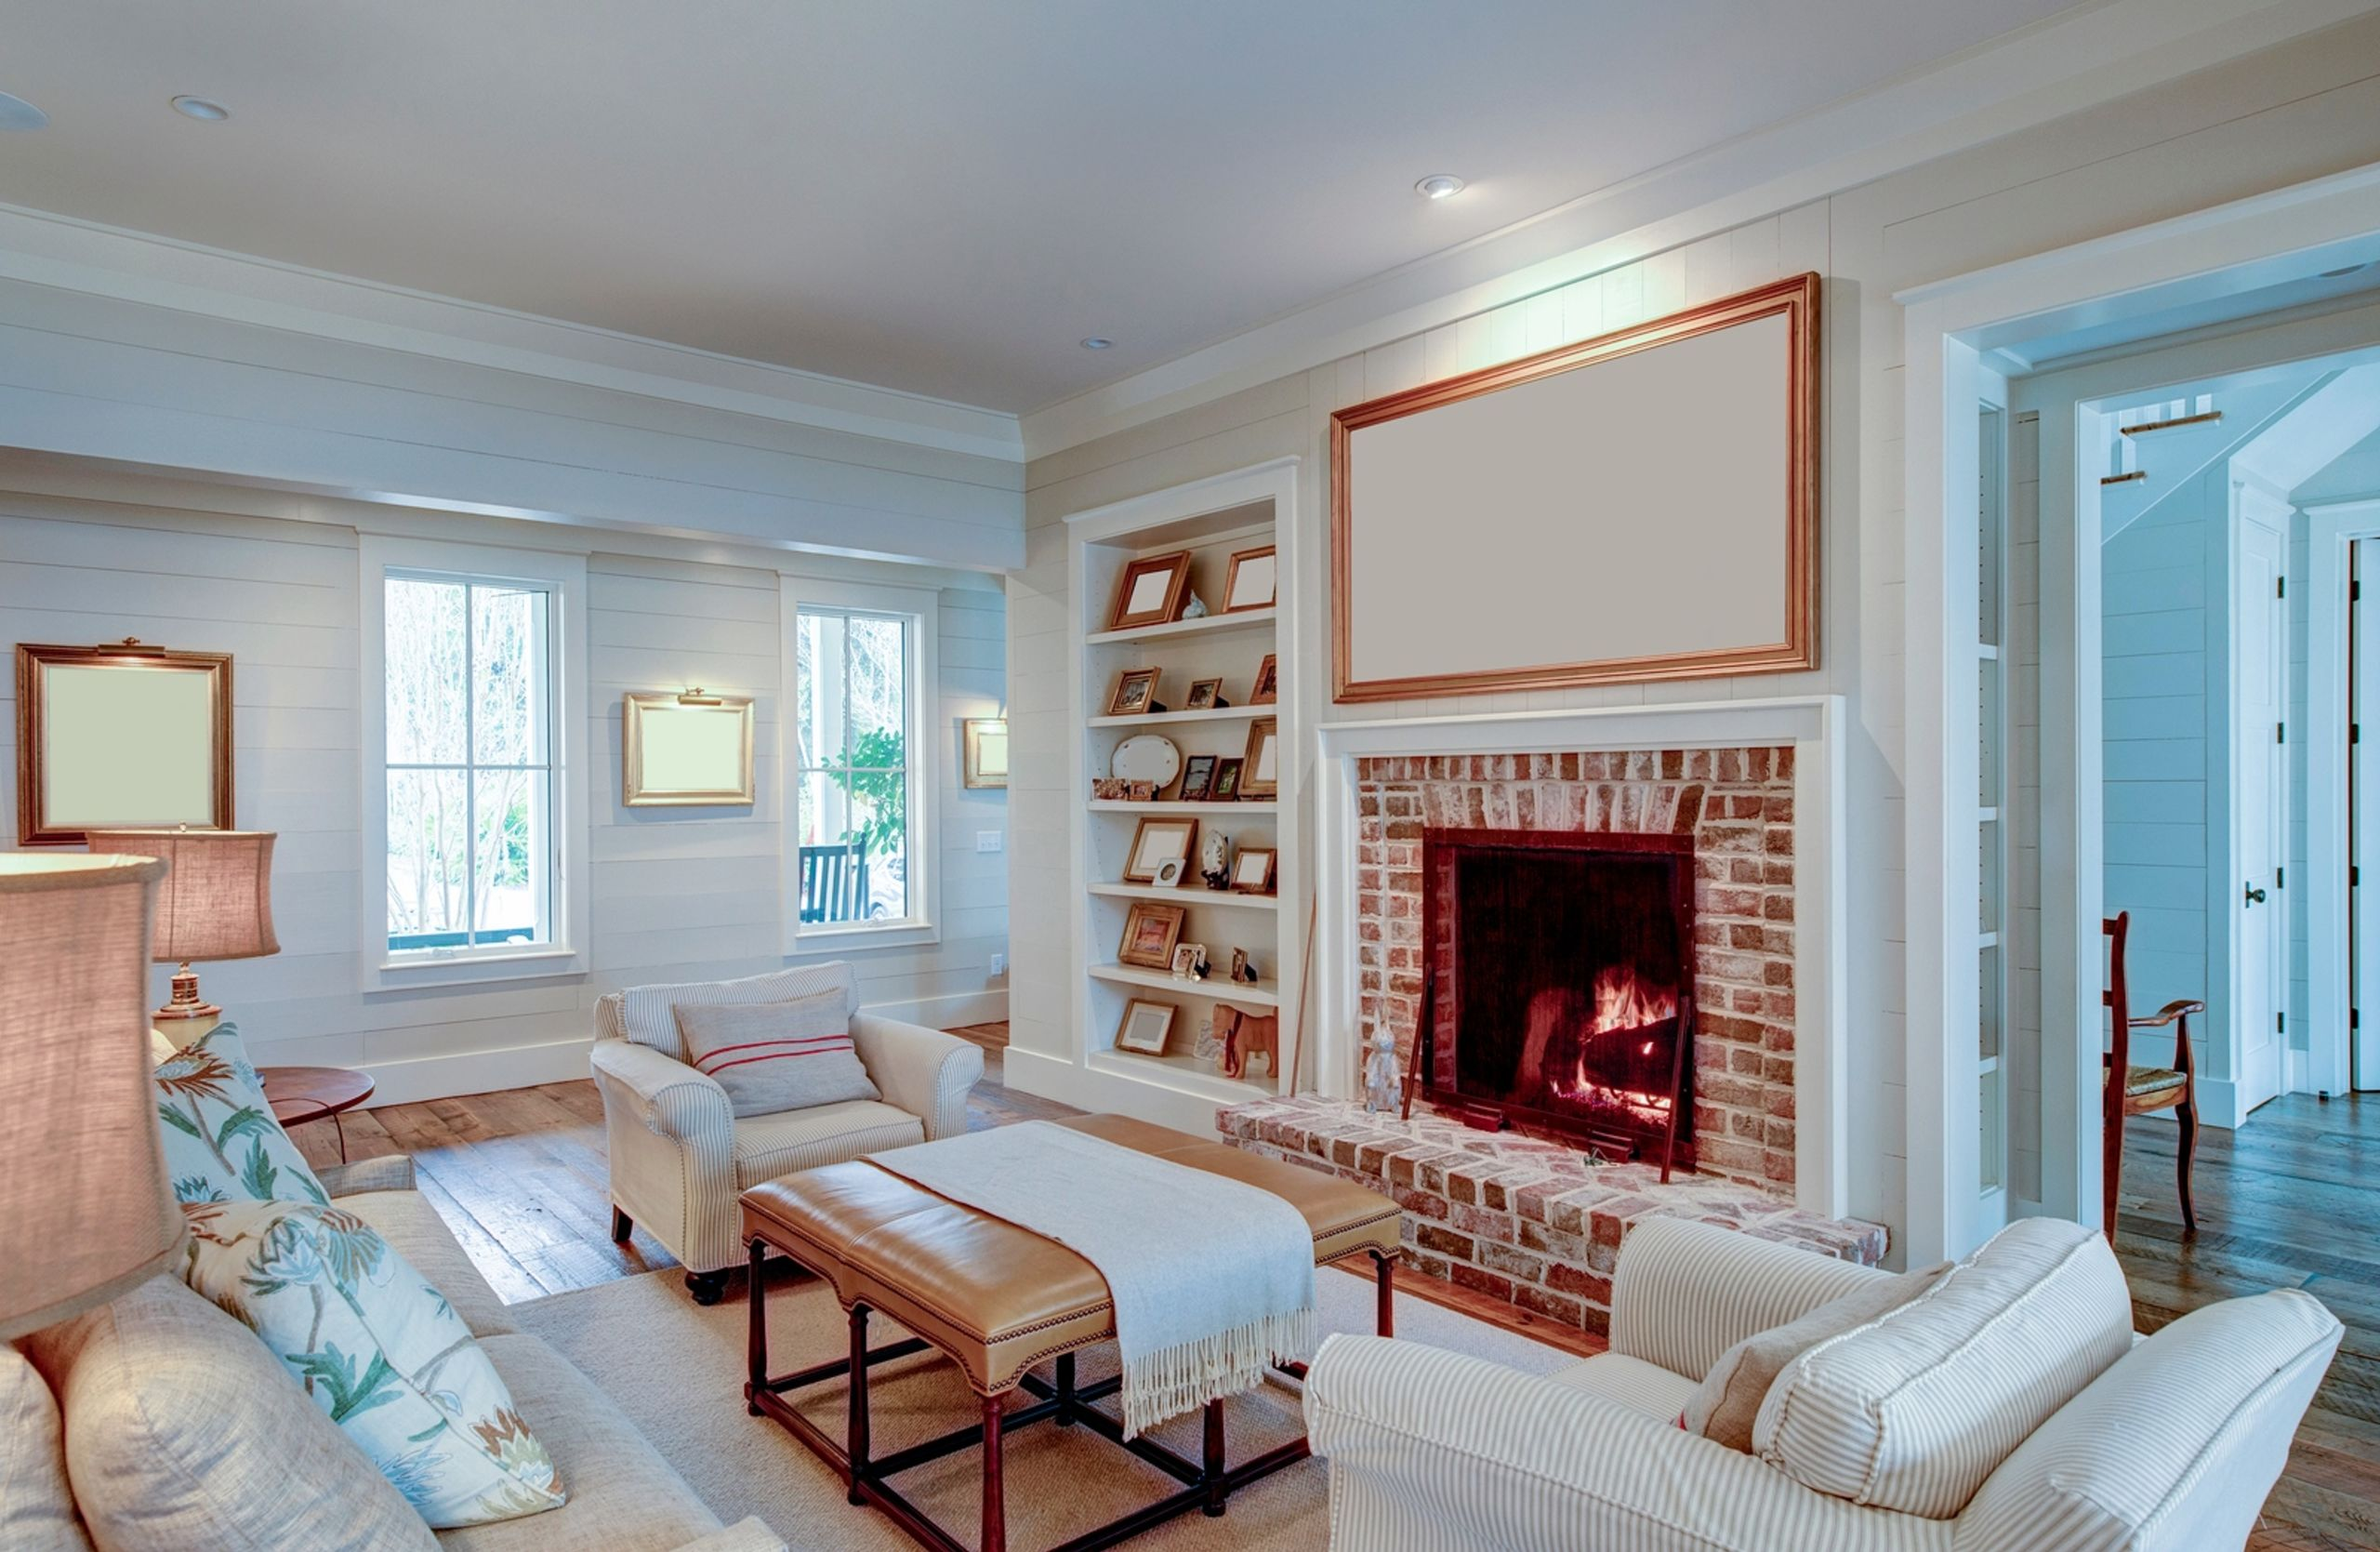 Find a Home with Comfortable Living Spaces!